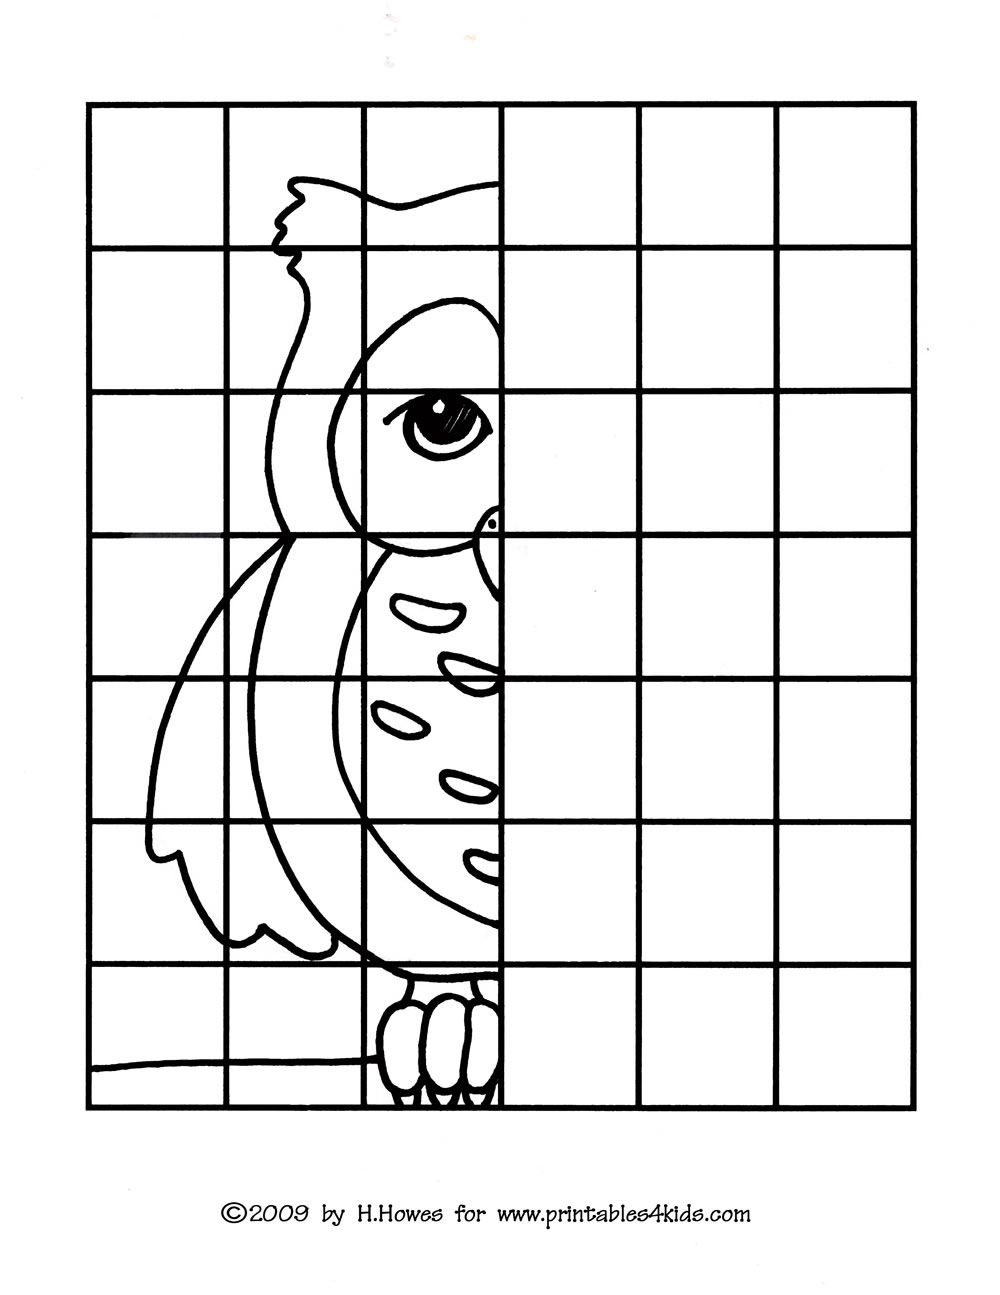 Free coloring pages for exercise - Owl Complete The Picture Drawing Printables For Kids Free Word Search Puzzles Coloring